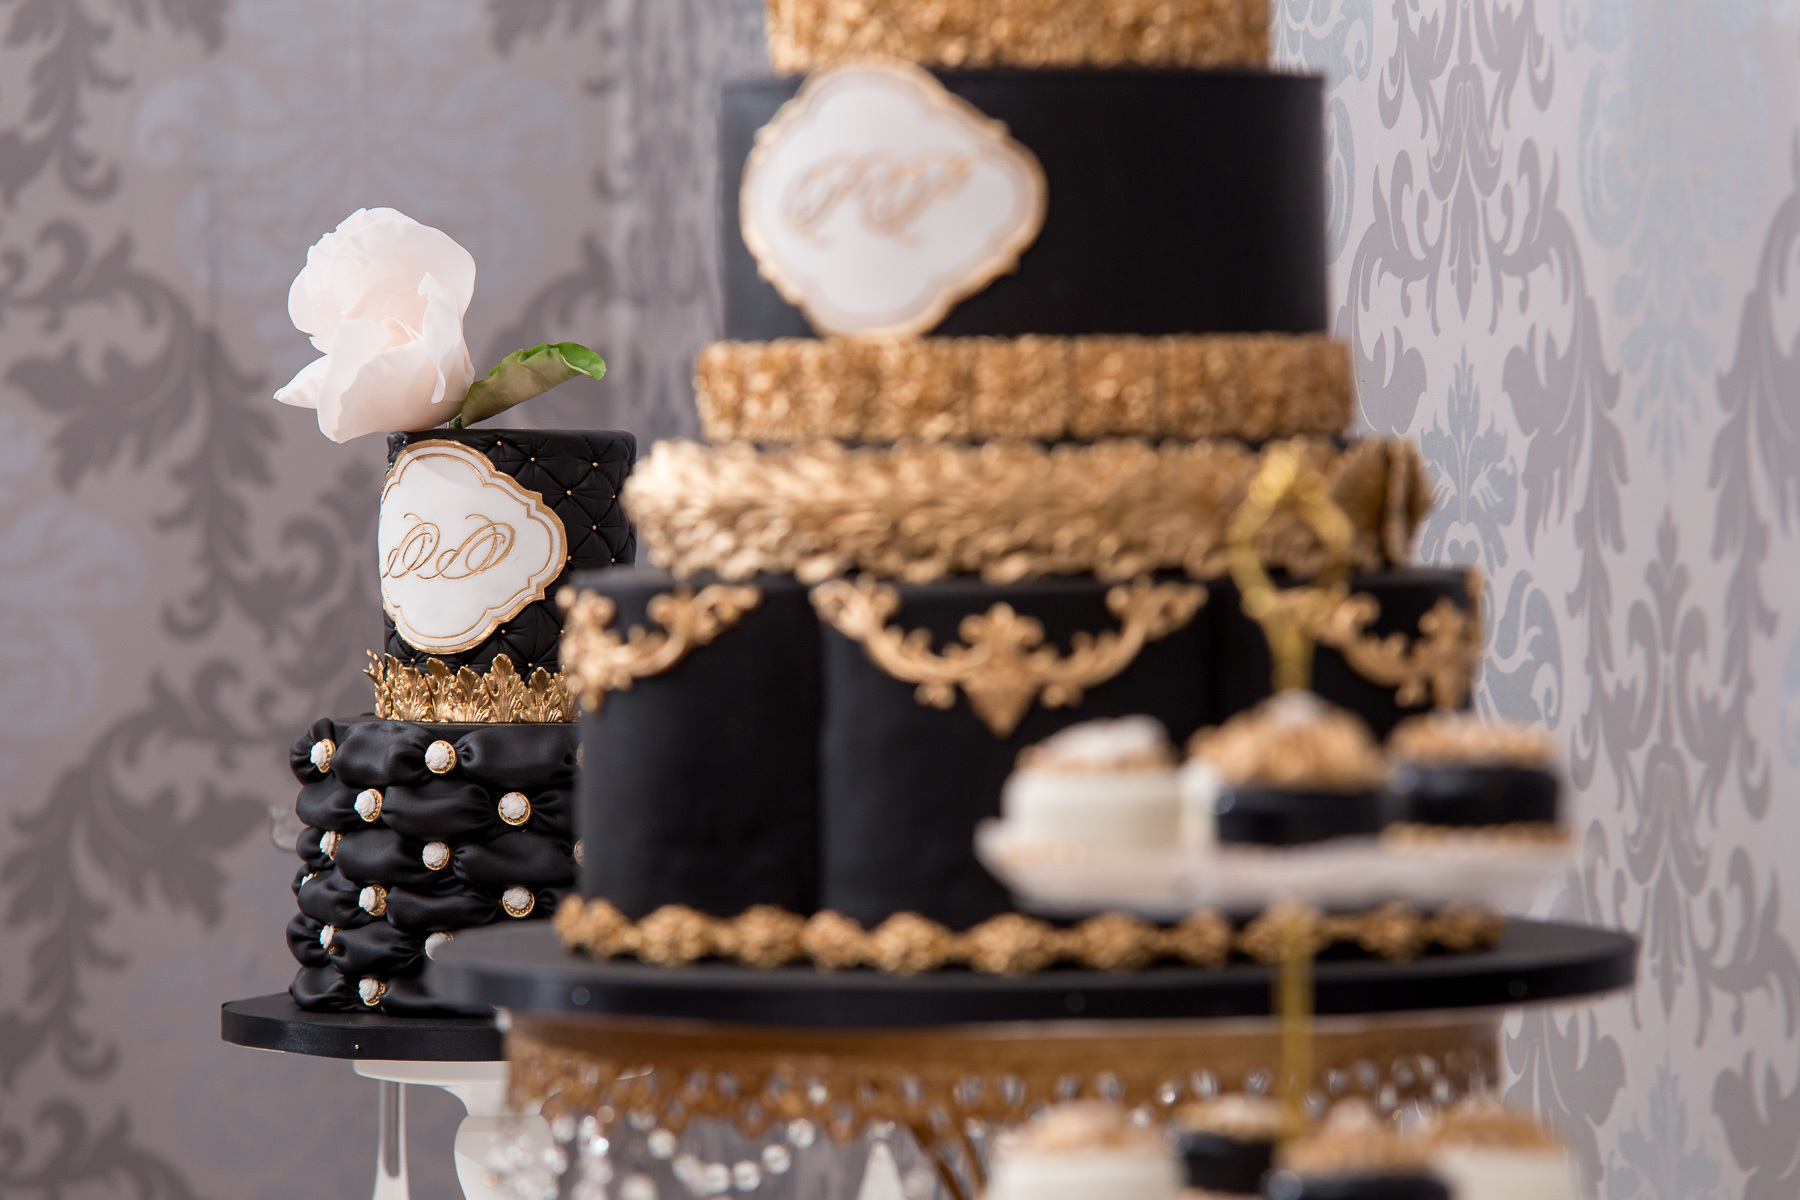 Black and gold victorian styled fondant wedding cake